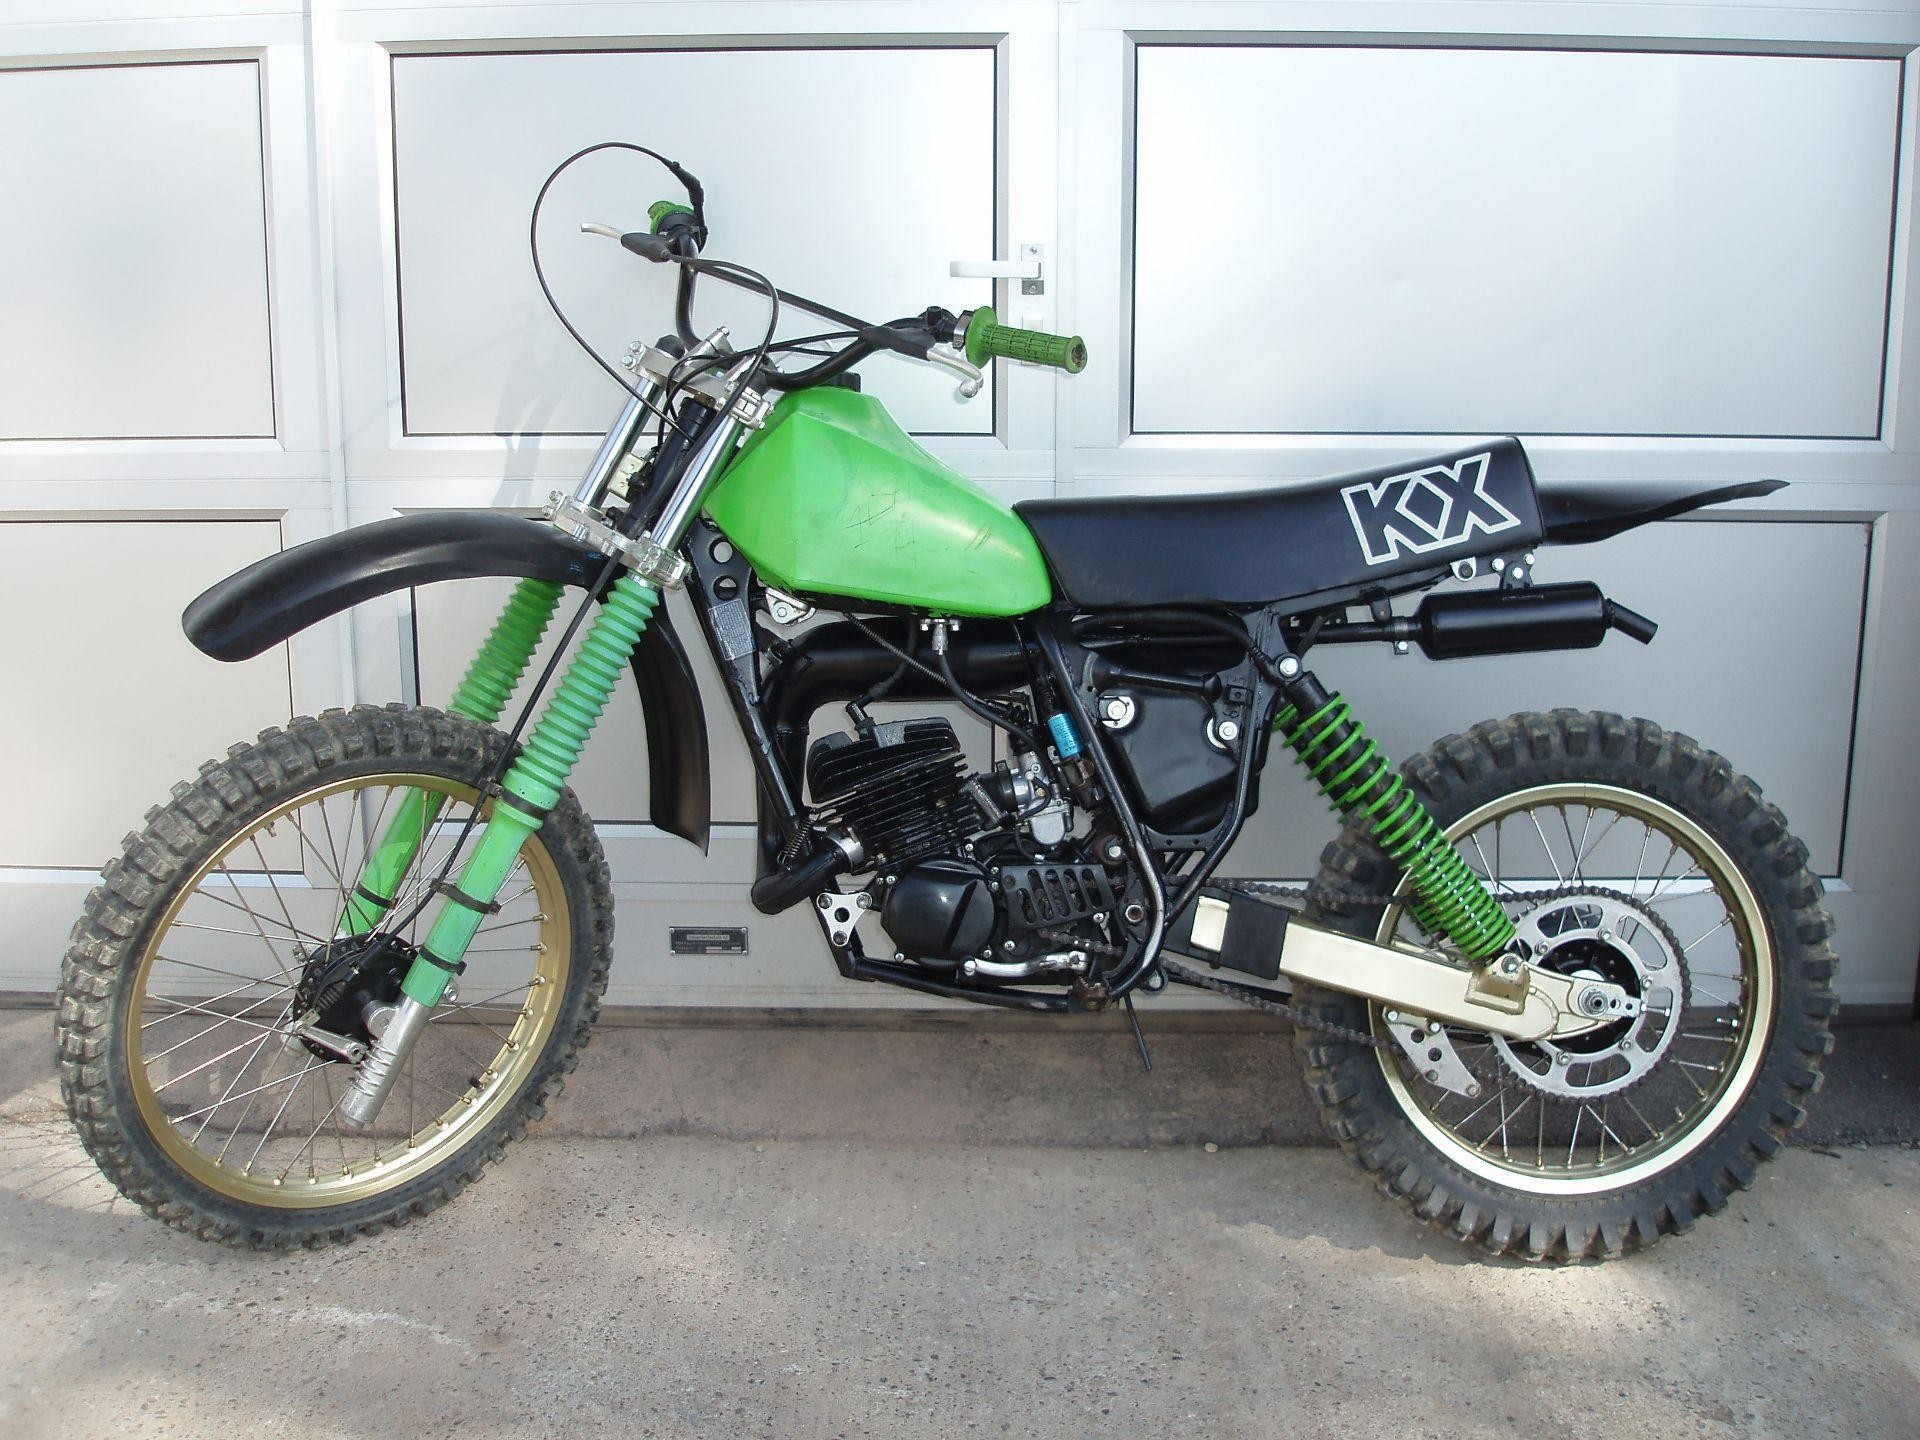 motorrad oldtimer kaufen kawasaki kx 125 twin shock moto huber d llikon. Black Bedroom Furniture Sets. Home Design Ideas